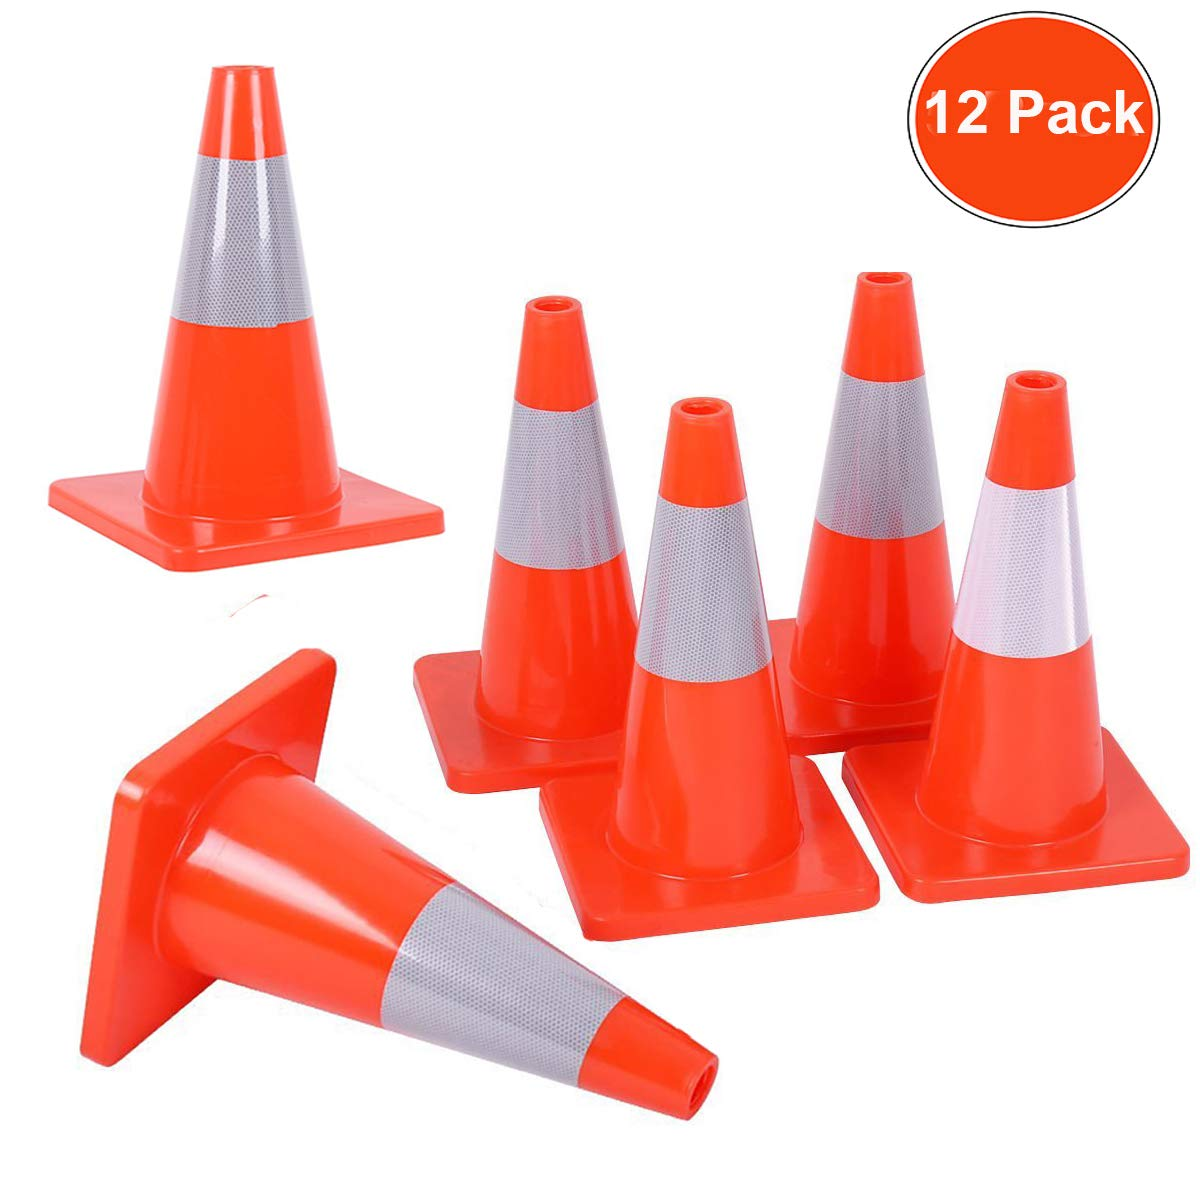 Reliancer 12PCS 18'' Traffic Cones PVC Safety Road Parking Cones Weighted Hazard Cones Construction Cones for Traffic Fluorescent Orange w/4'' Reflective Strips Collar